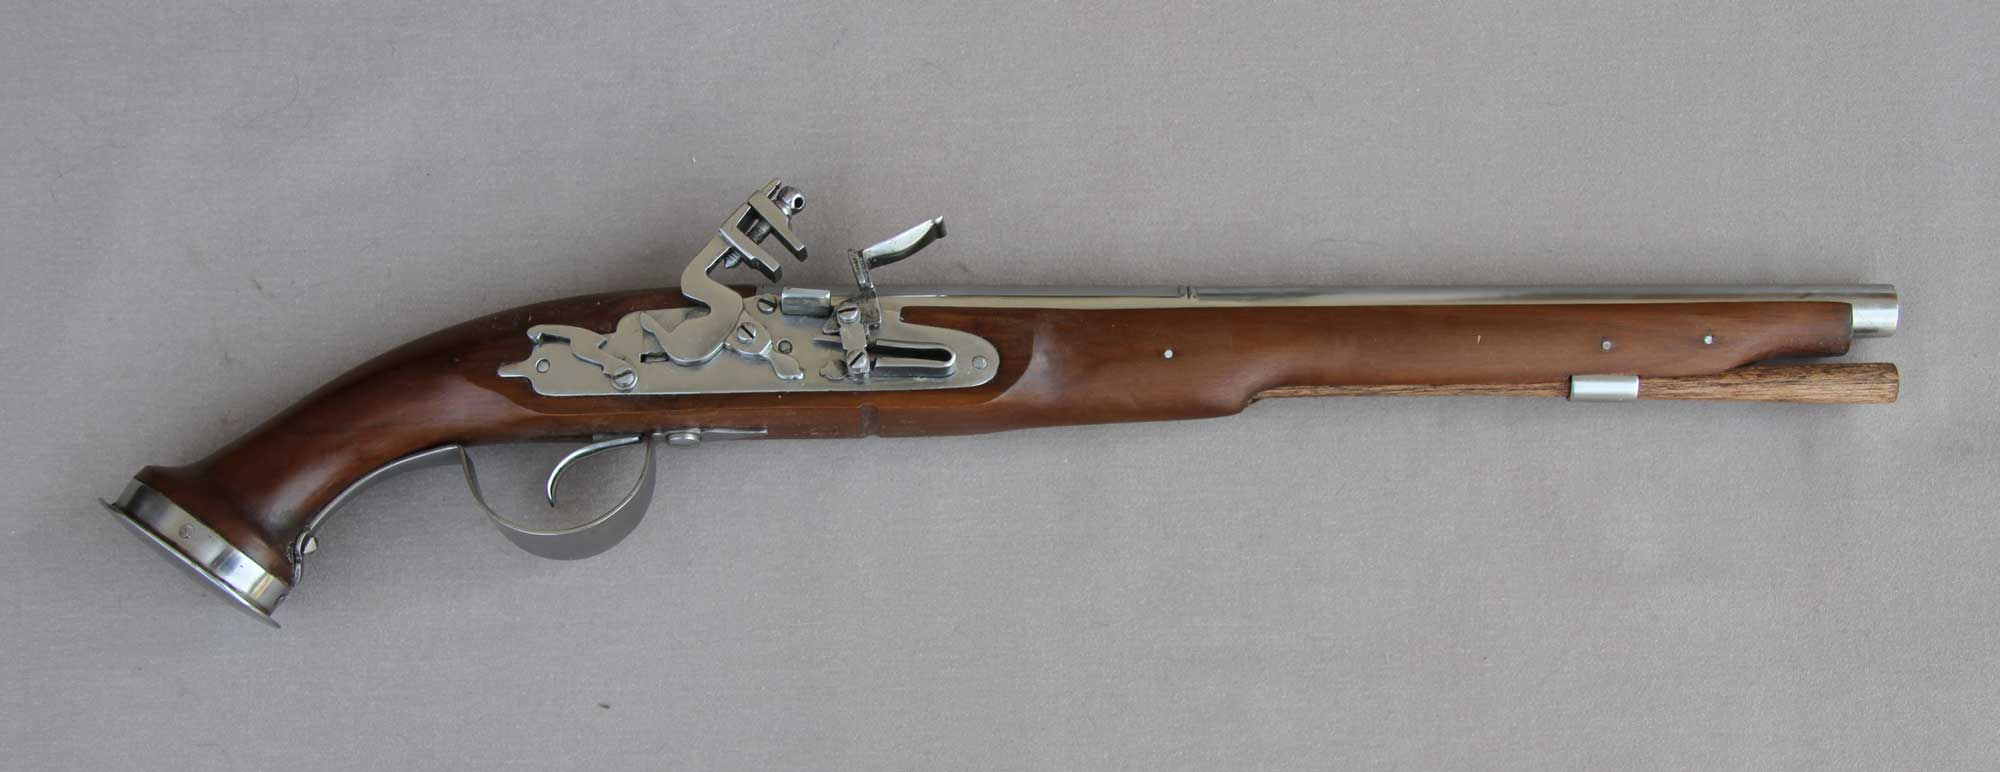 British Dog Lock pistol